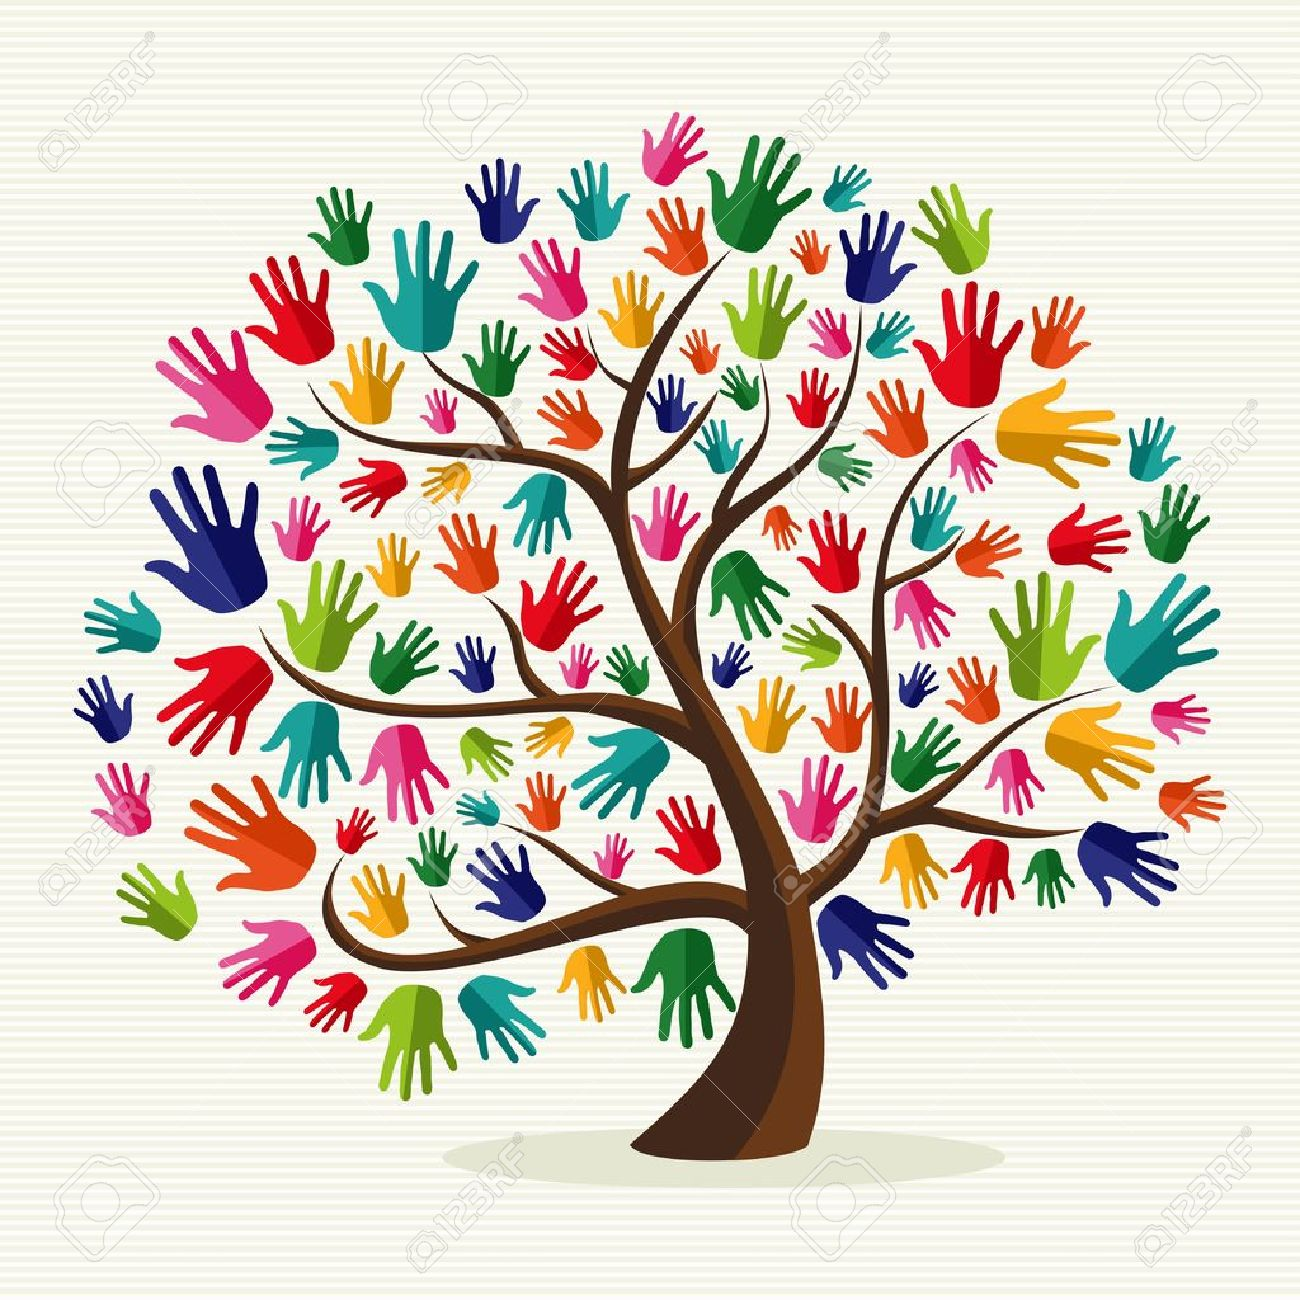 Diversity multi-ethnic hand tree illustration over stripe pattern background. file layered for easy manipulation and custom coloring. - 20633178